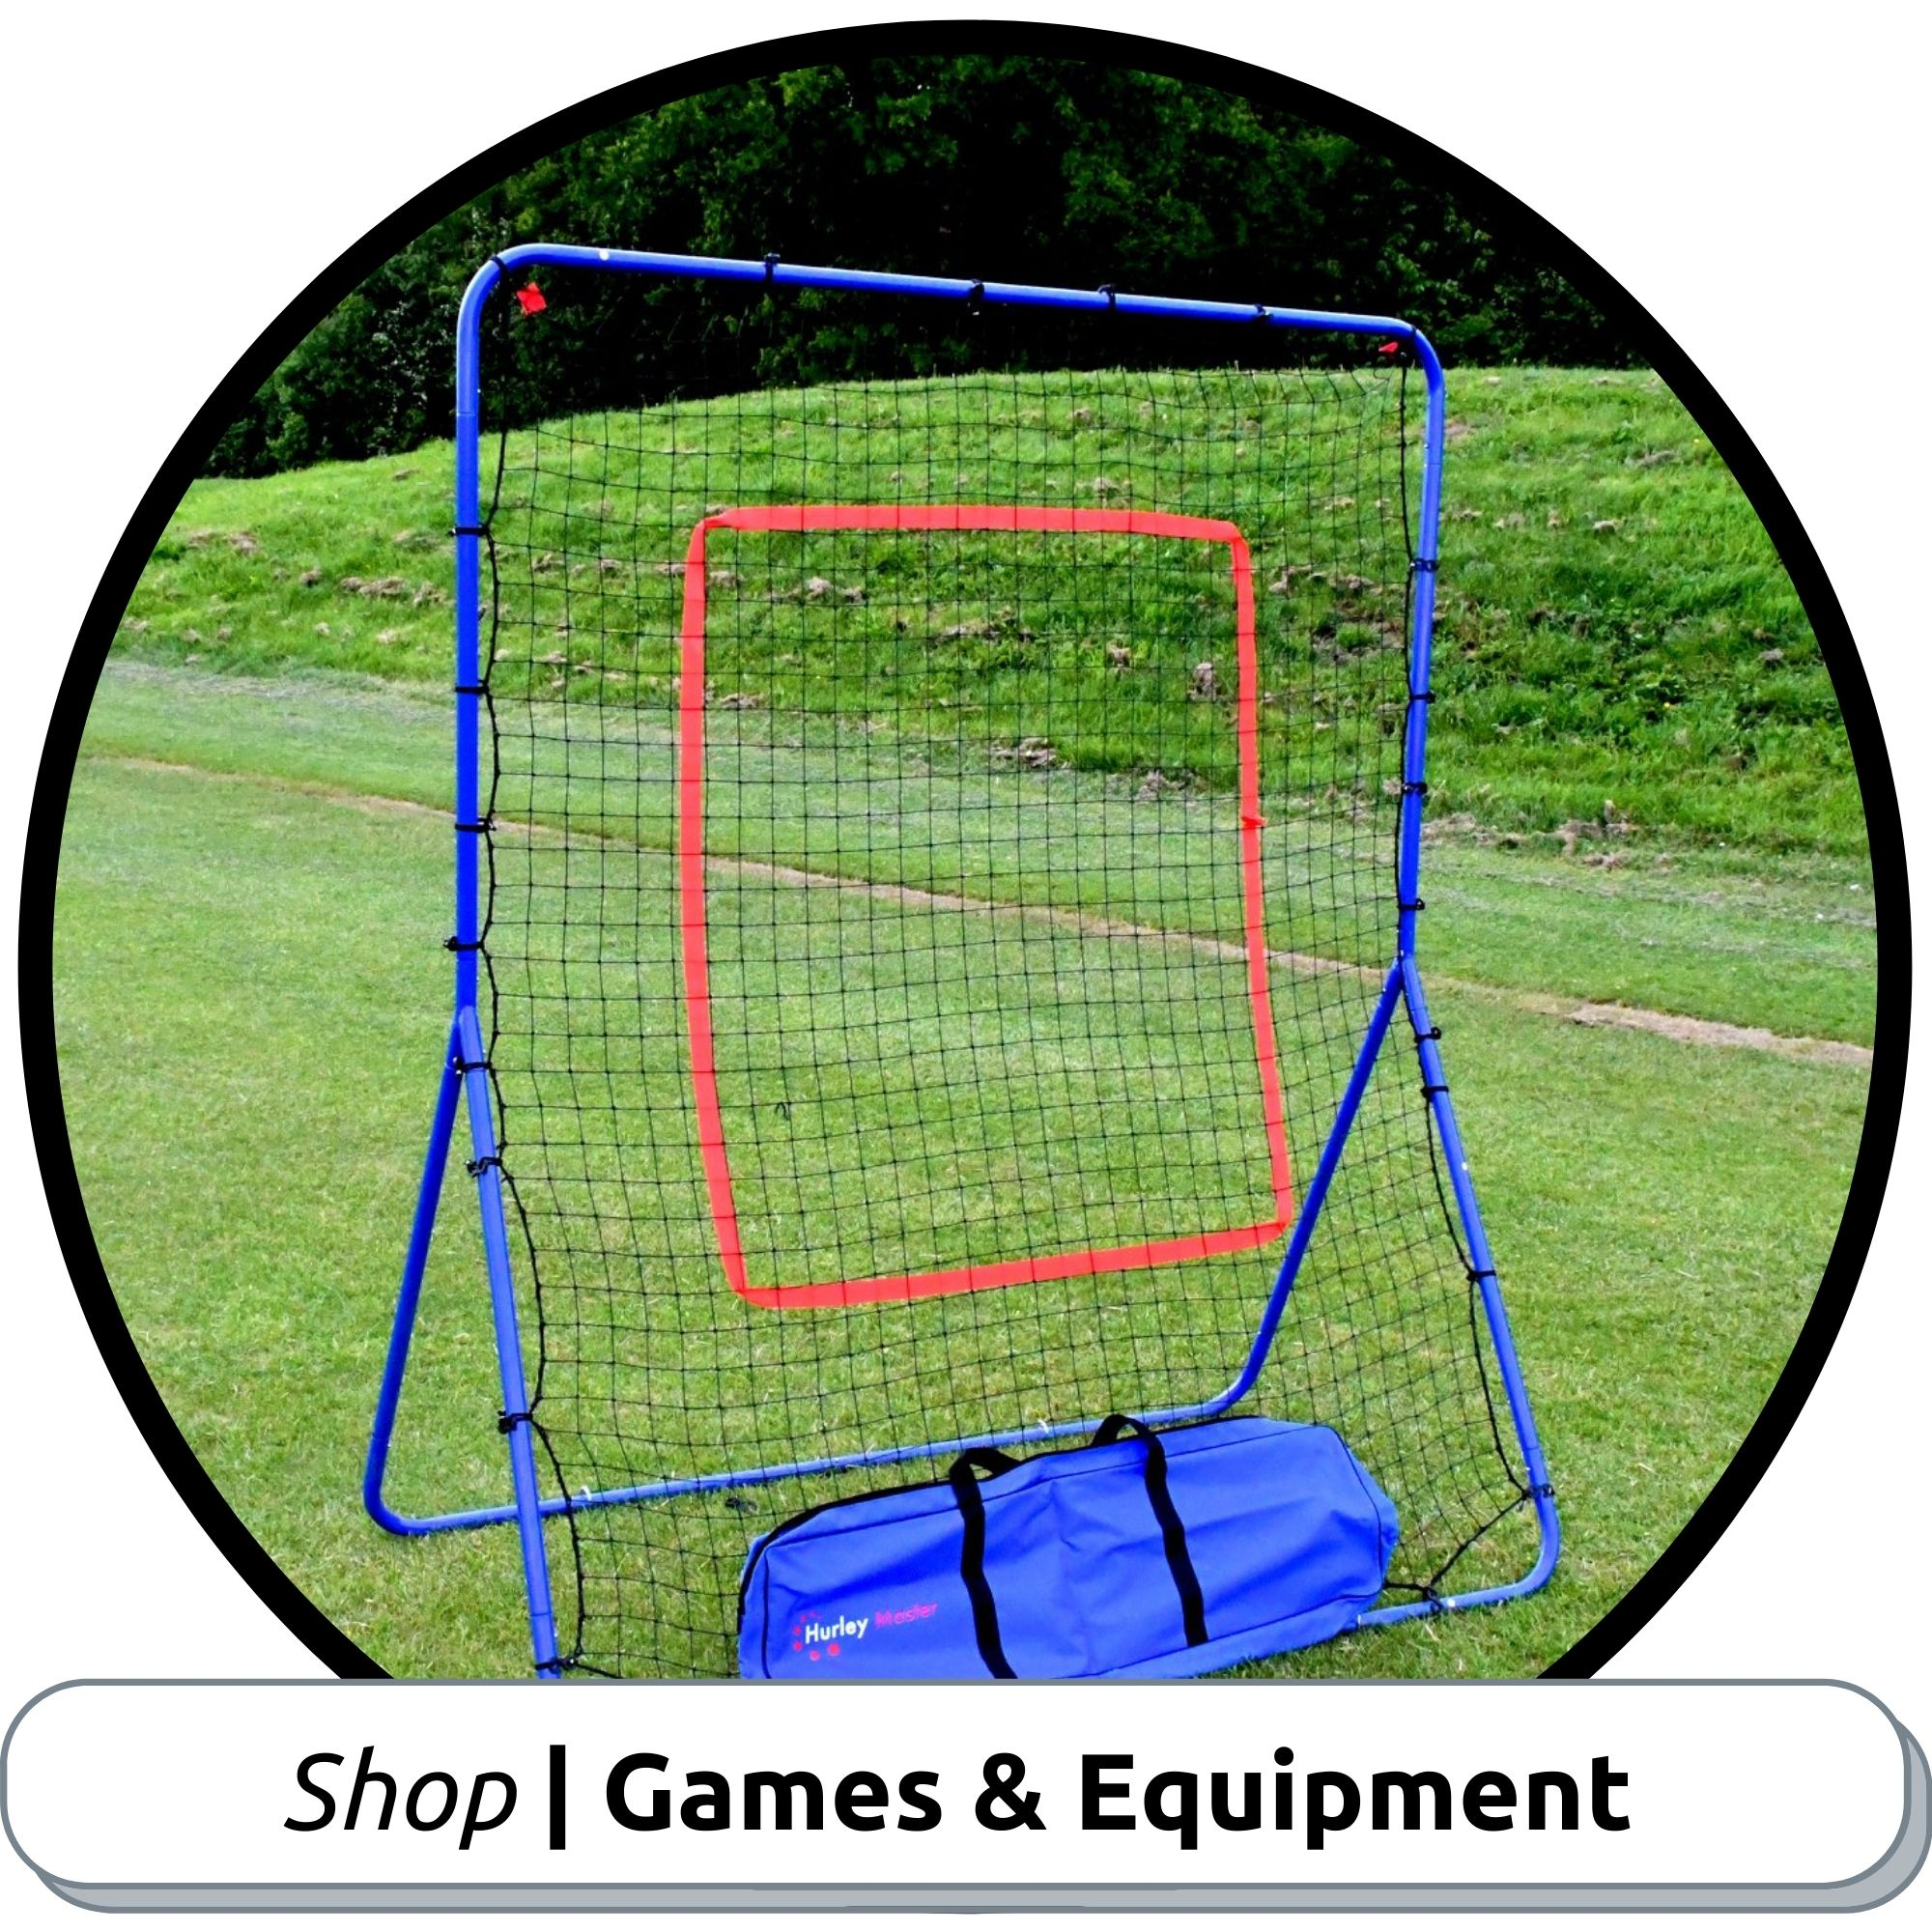 Shop Games & Equipment